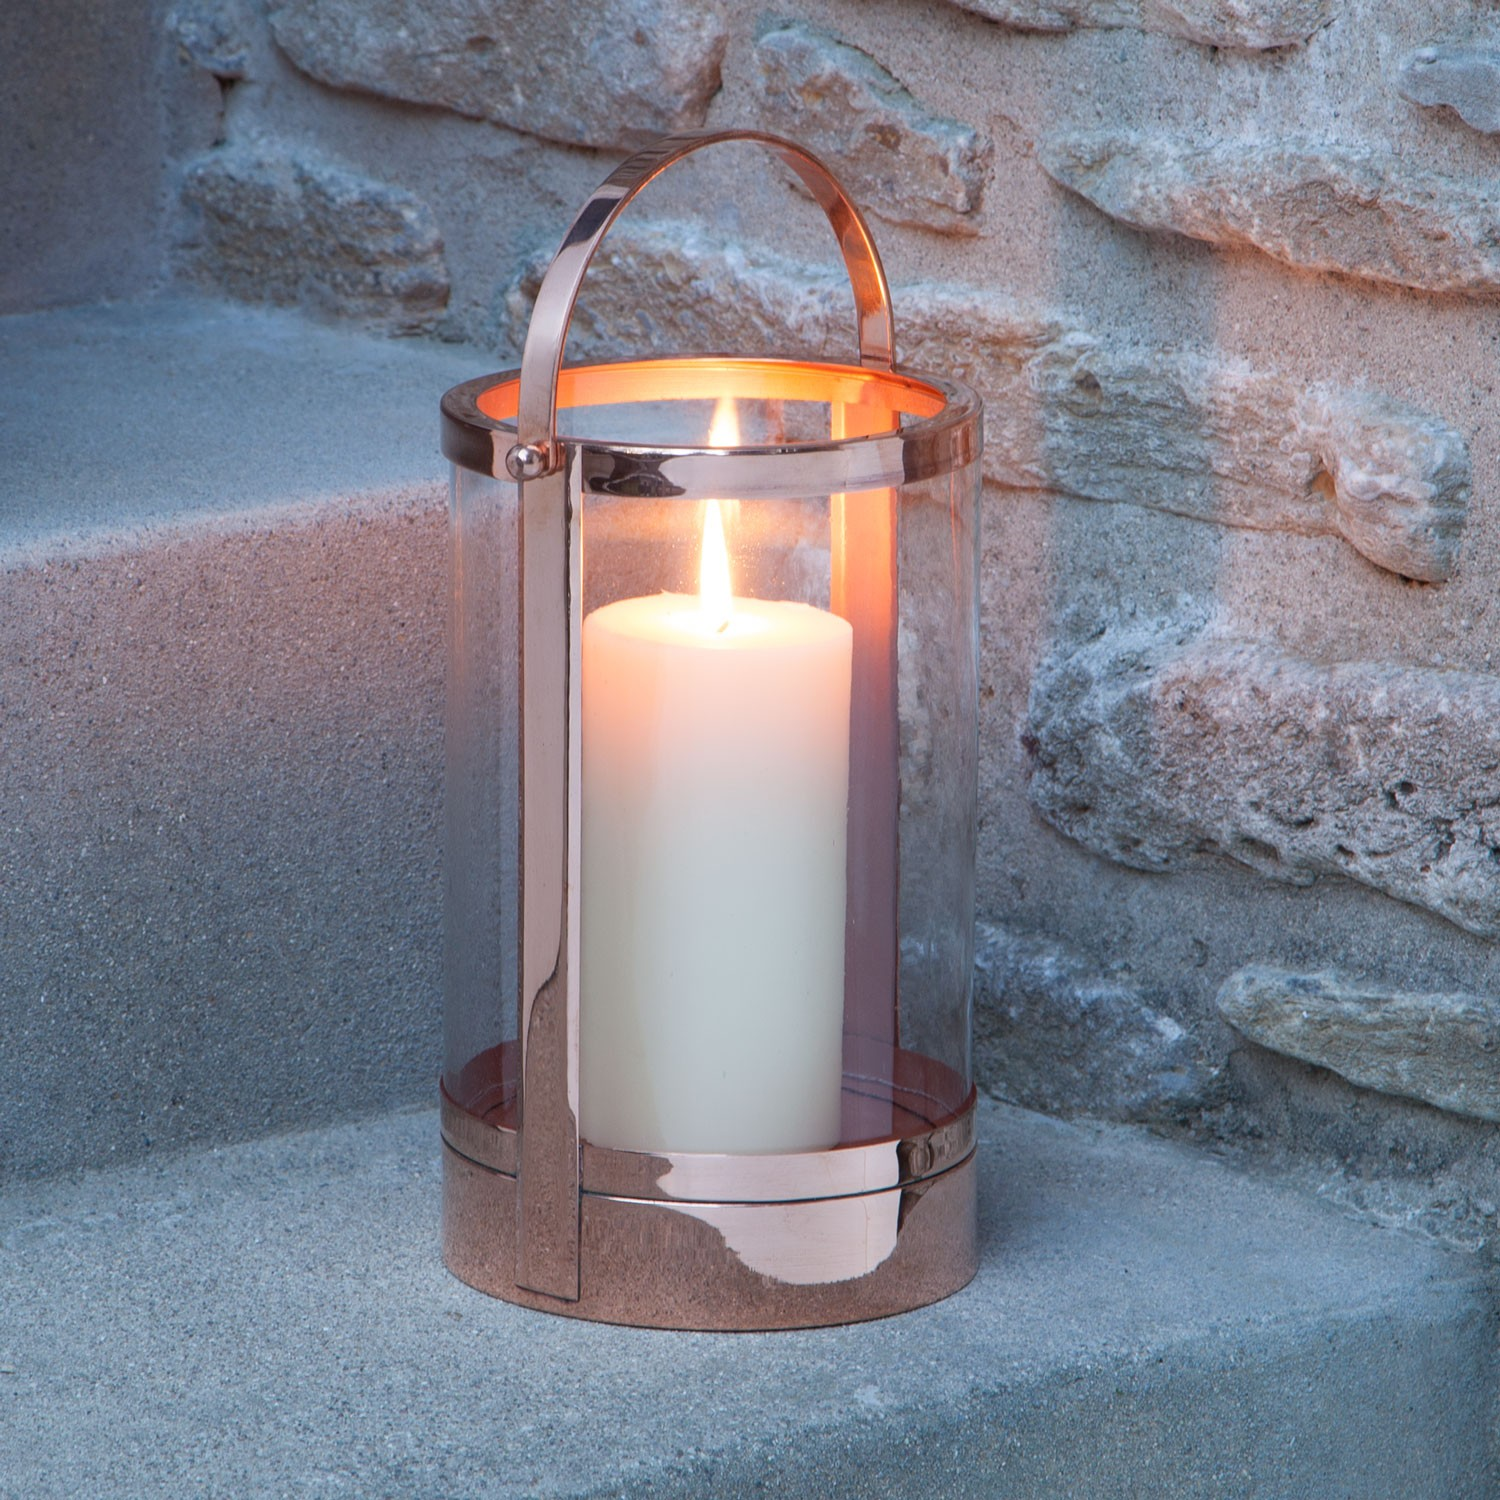 Breathtaking candle lanterns for outdoor lighting ideas with outdoor candle lanterns and hanging candle lanterns